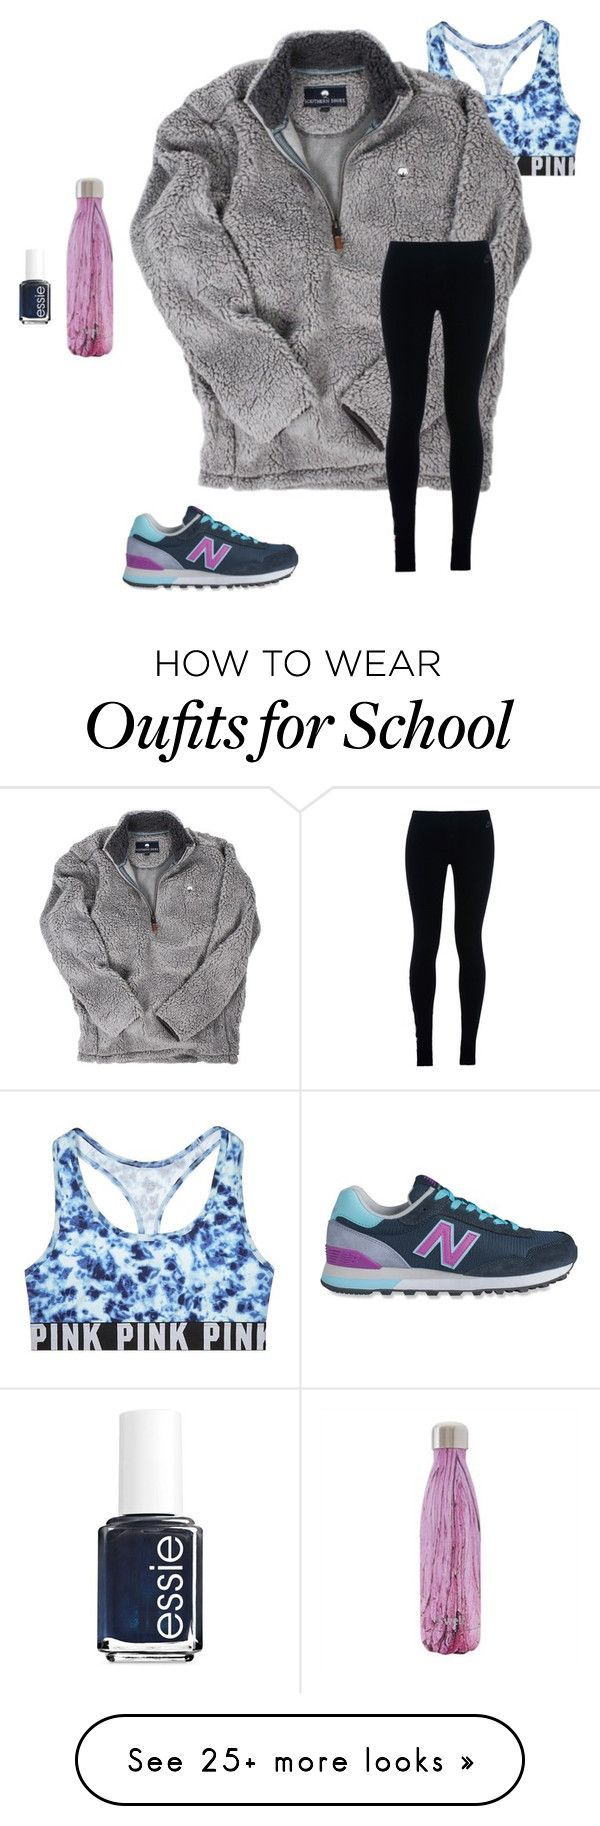 """school tomorrow "" by mckenzie-carr0ll on Polyvore featuring Victoria's Secret, NIKE, New Balance and Essie"